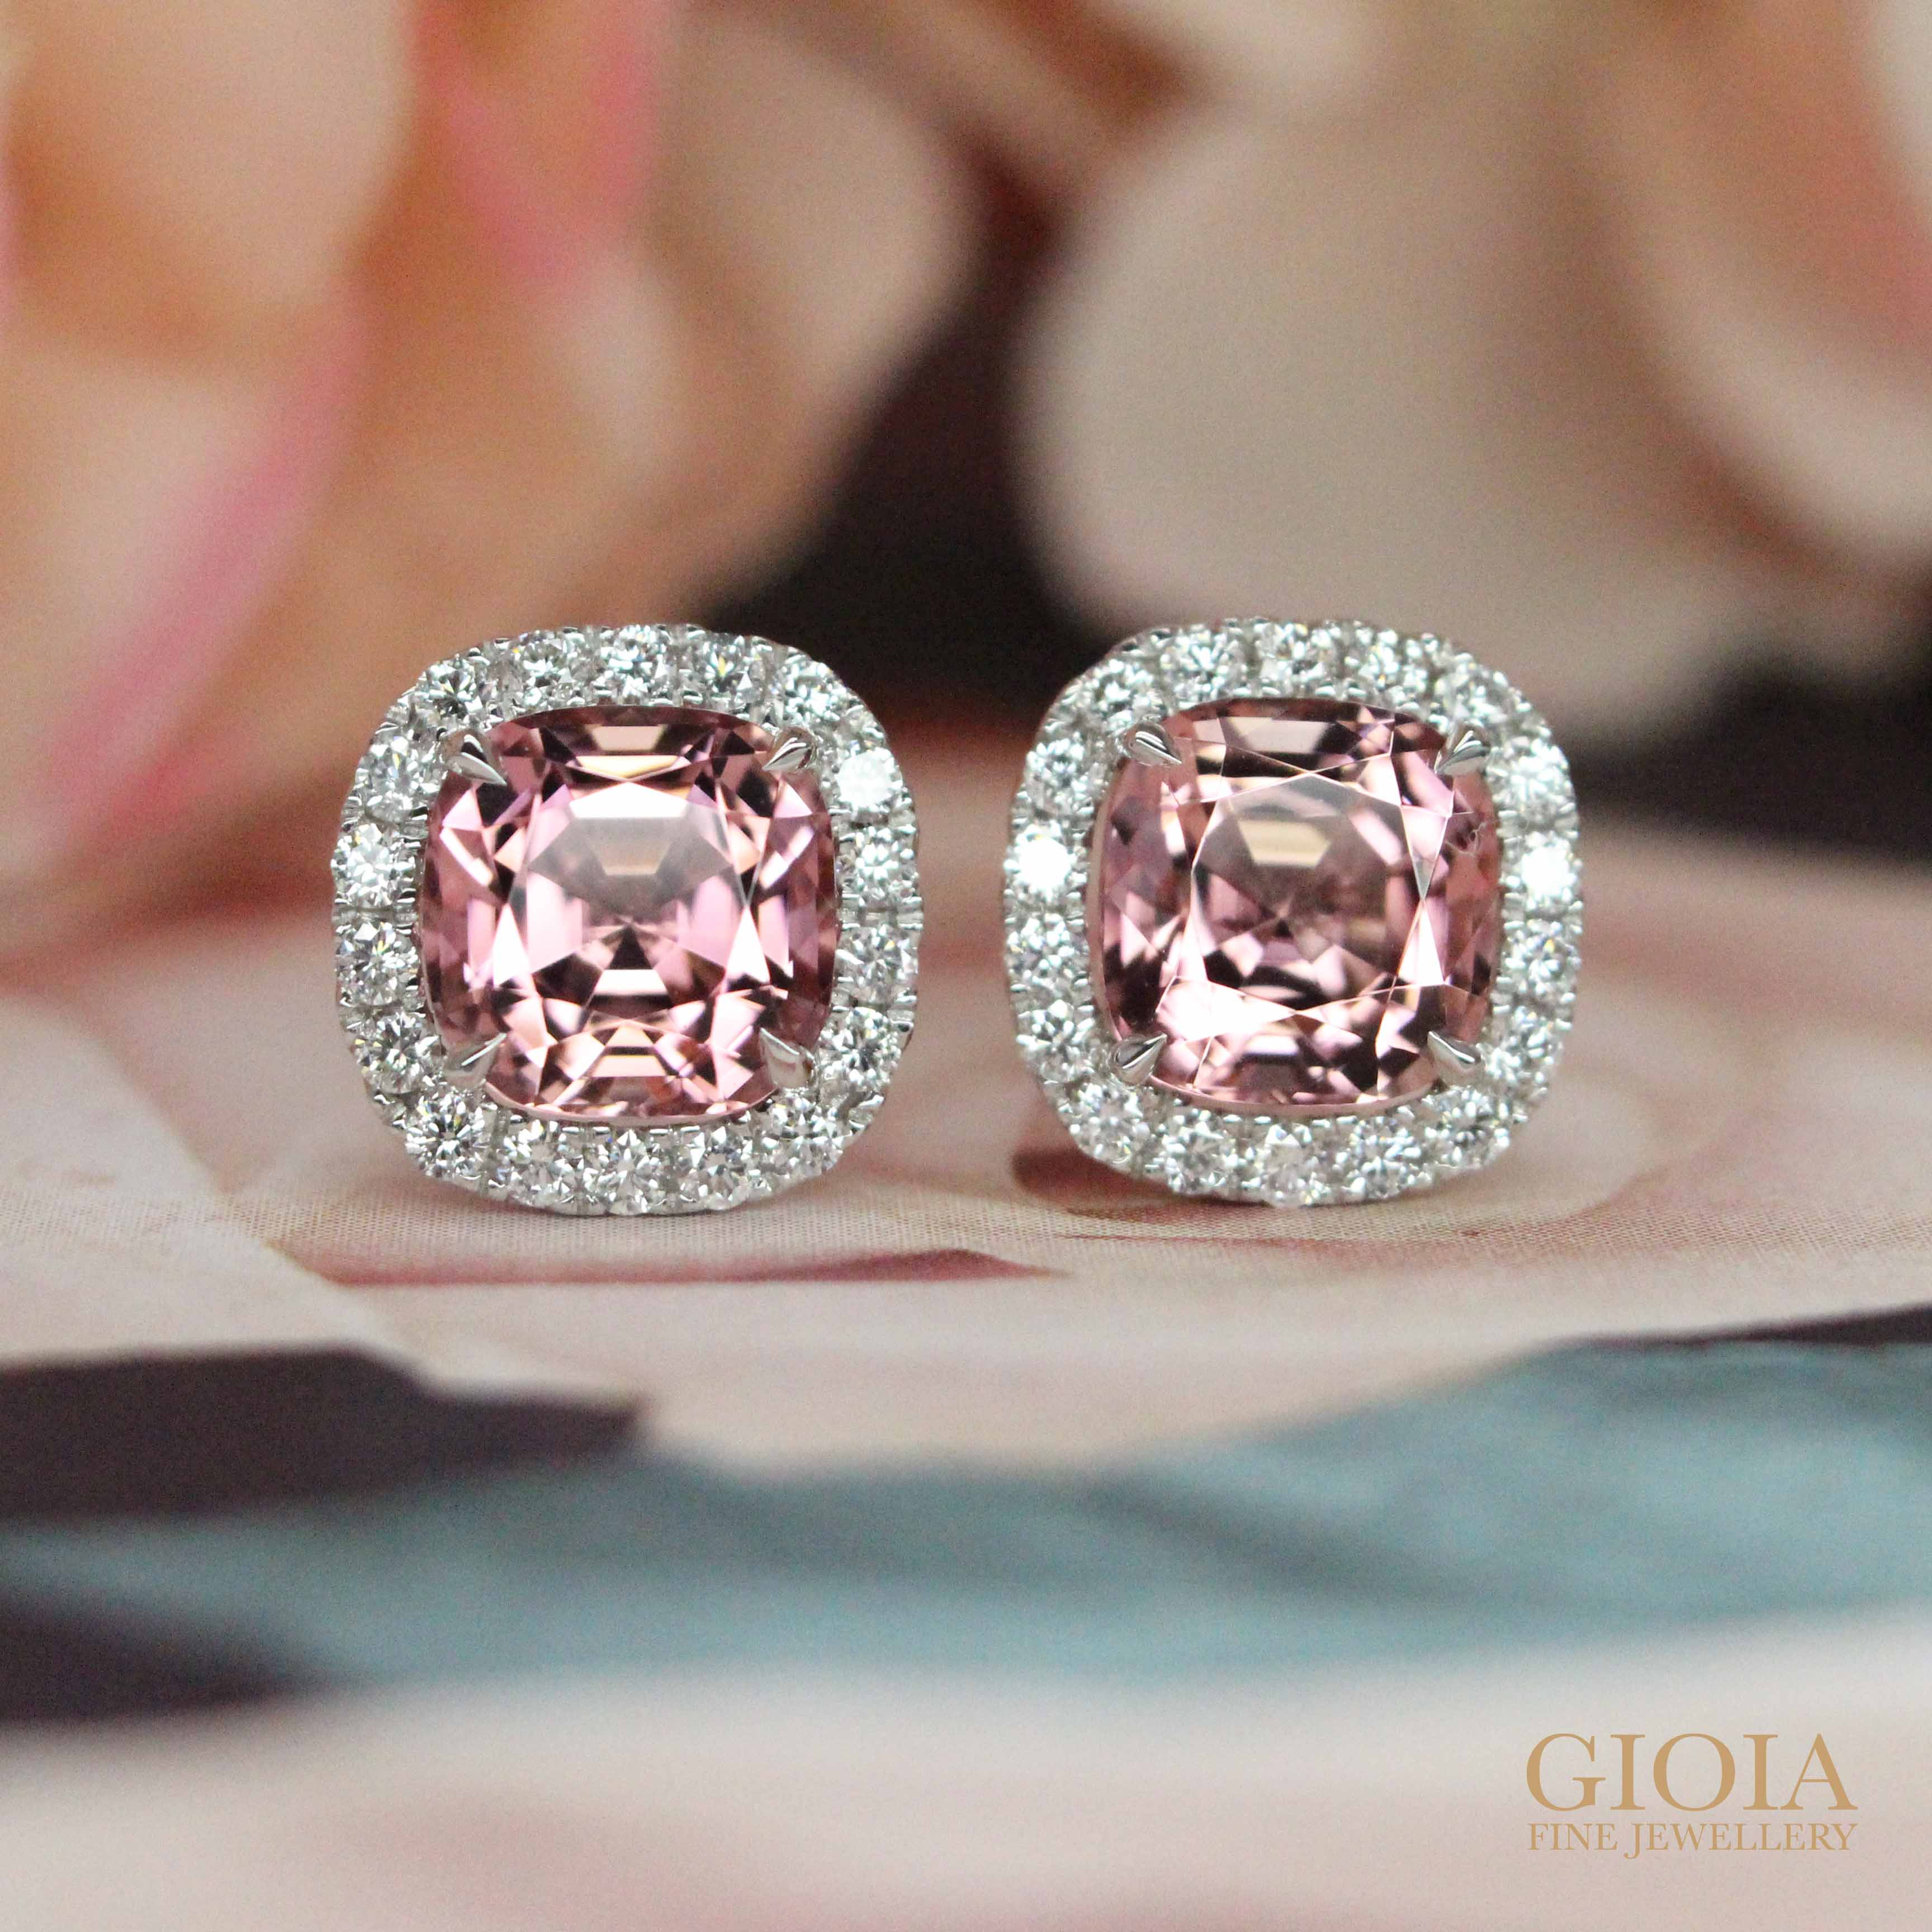 Pink Tourmaline gemstone in cushion modified brilliant cut to showcase the clean and define facets - Customised the tourmaline earring with halo Diamonds surround the gemstone.